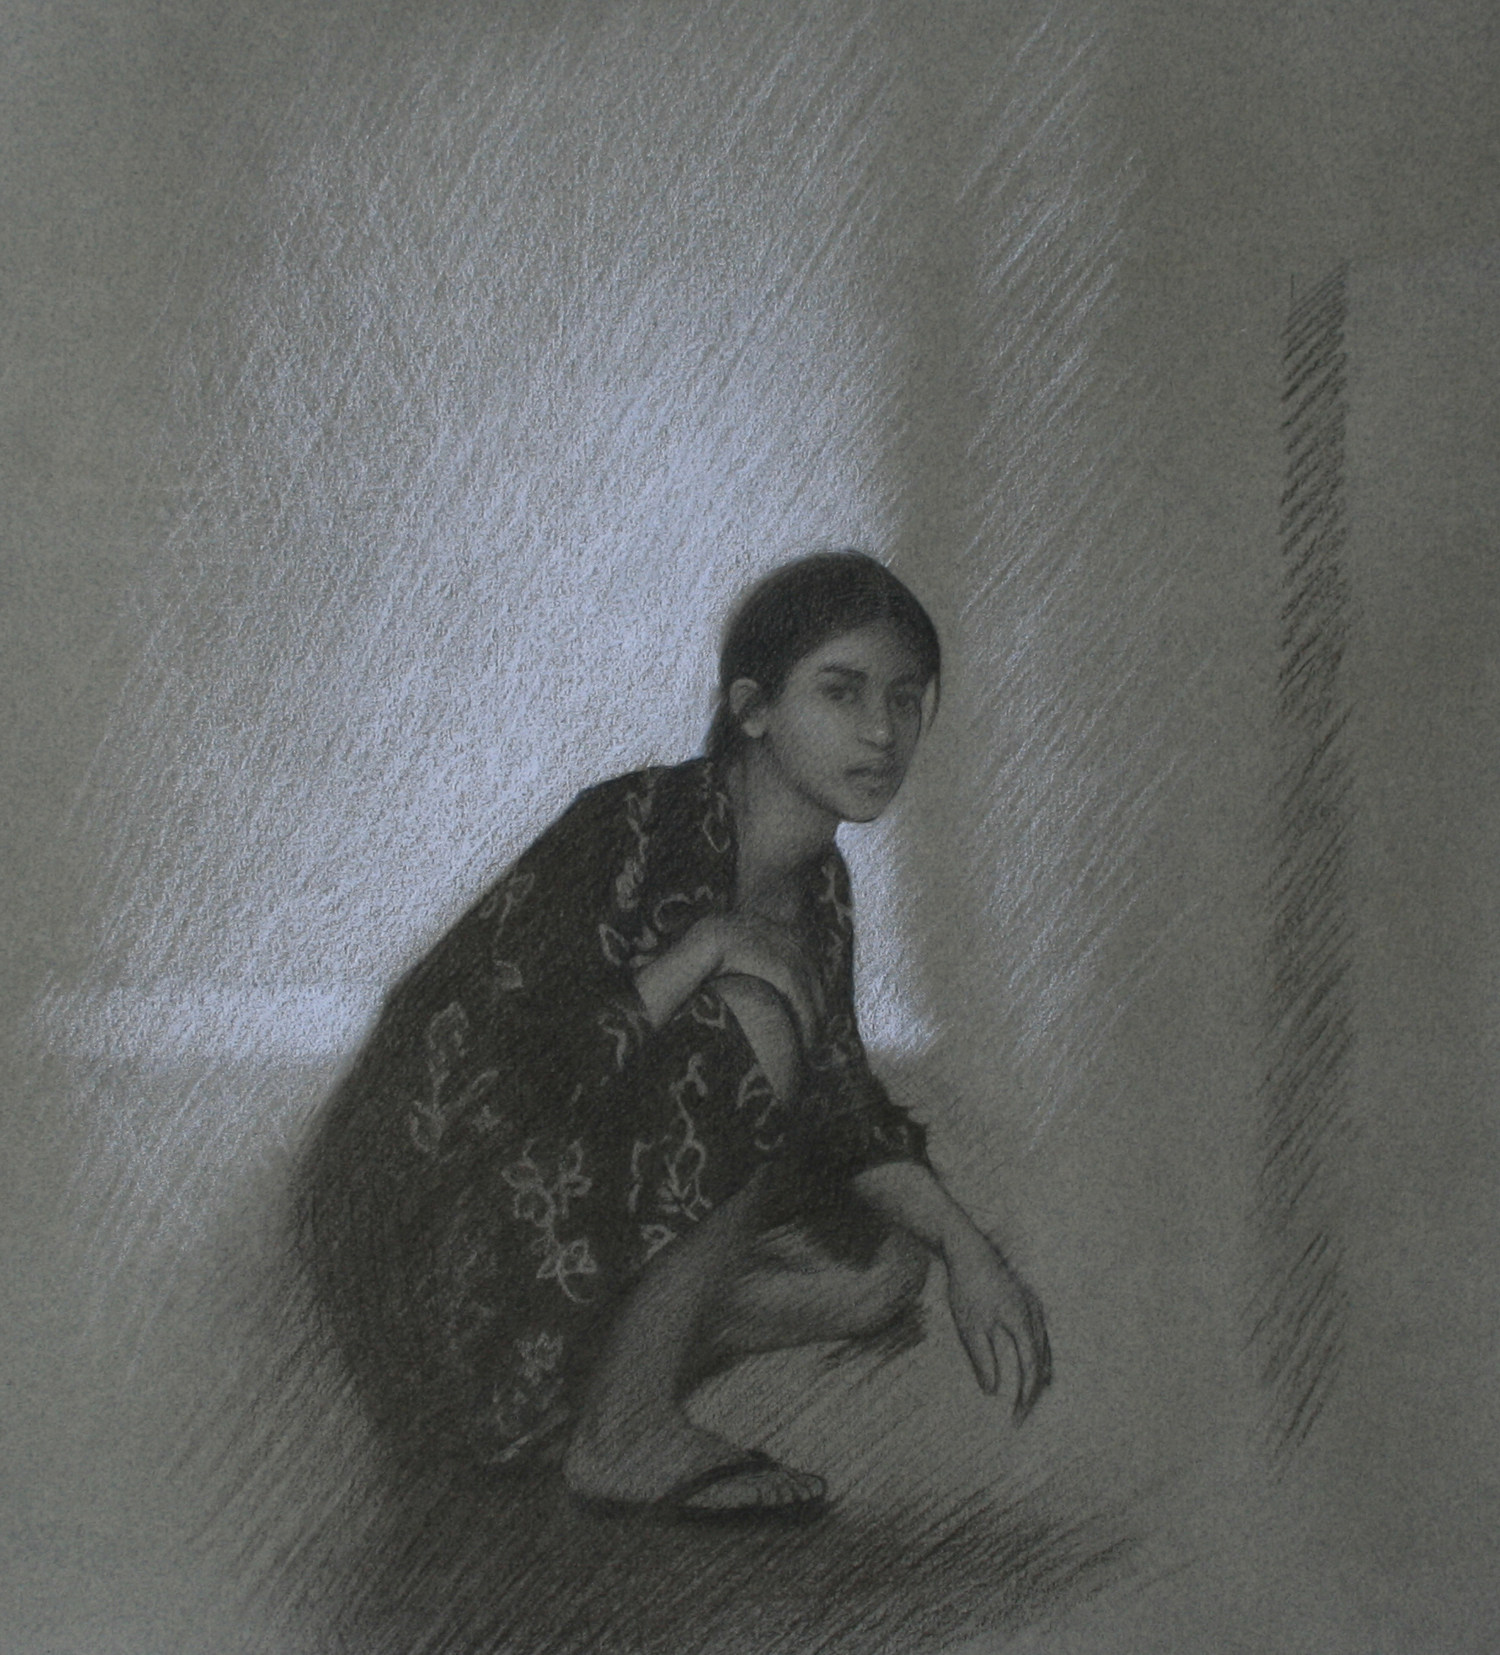 Passage Study,  2009, Charcoal on paper, 15 x 14 inches, Private collection